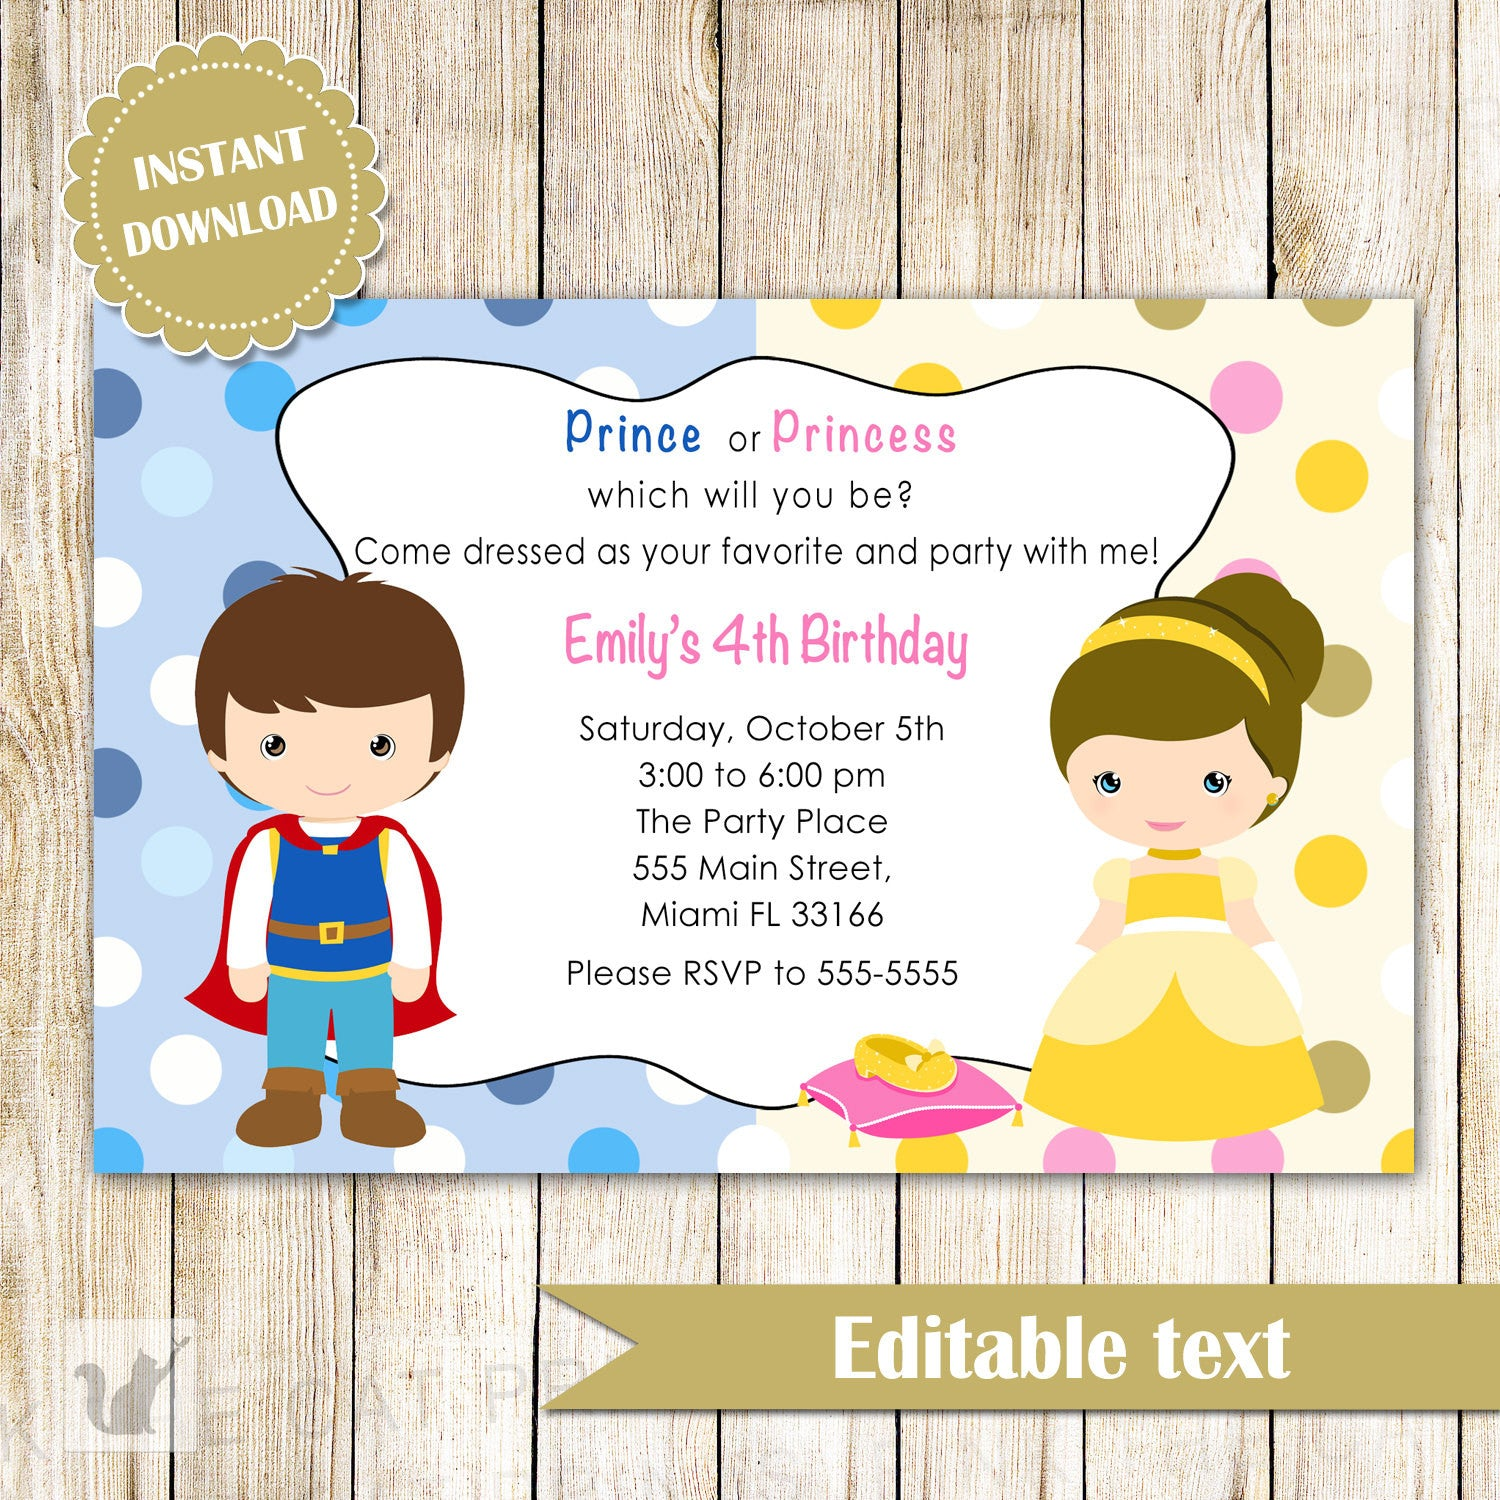 prince and princess party invitations - Boat.jeremyeaton.co